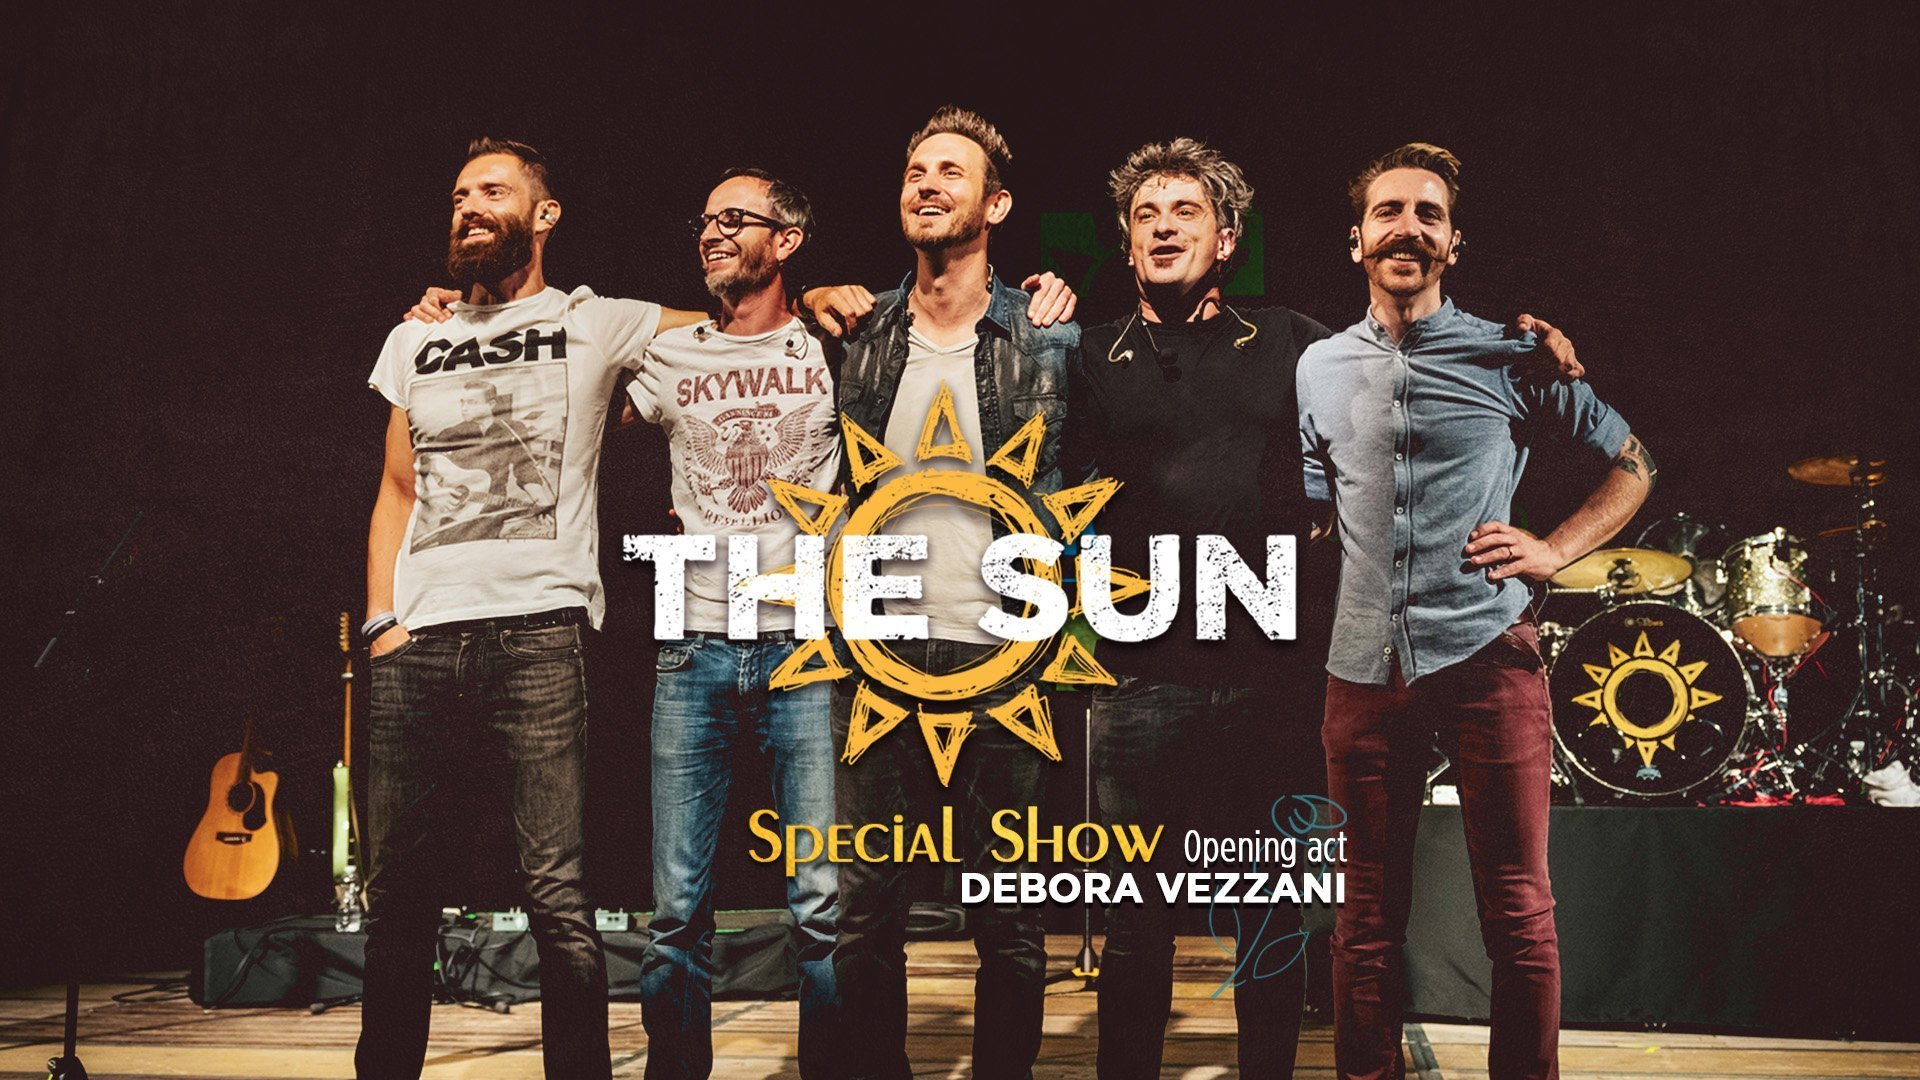 the sun rock band special show